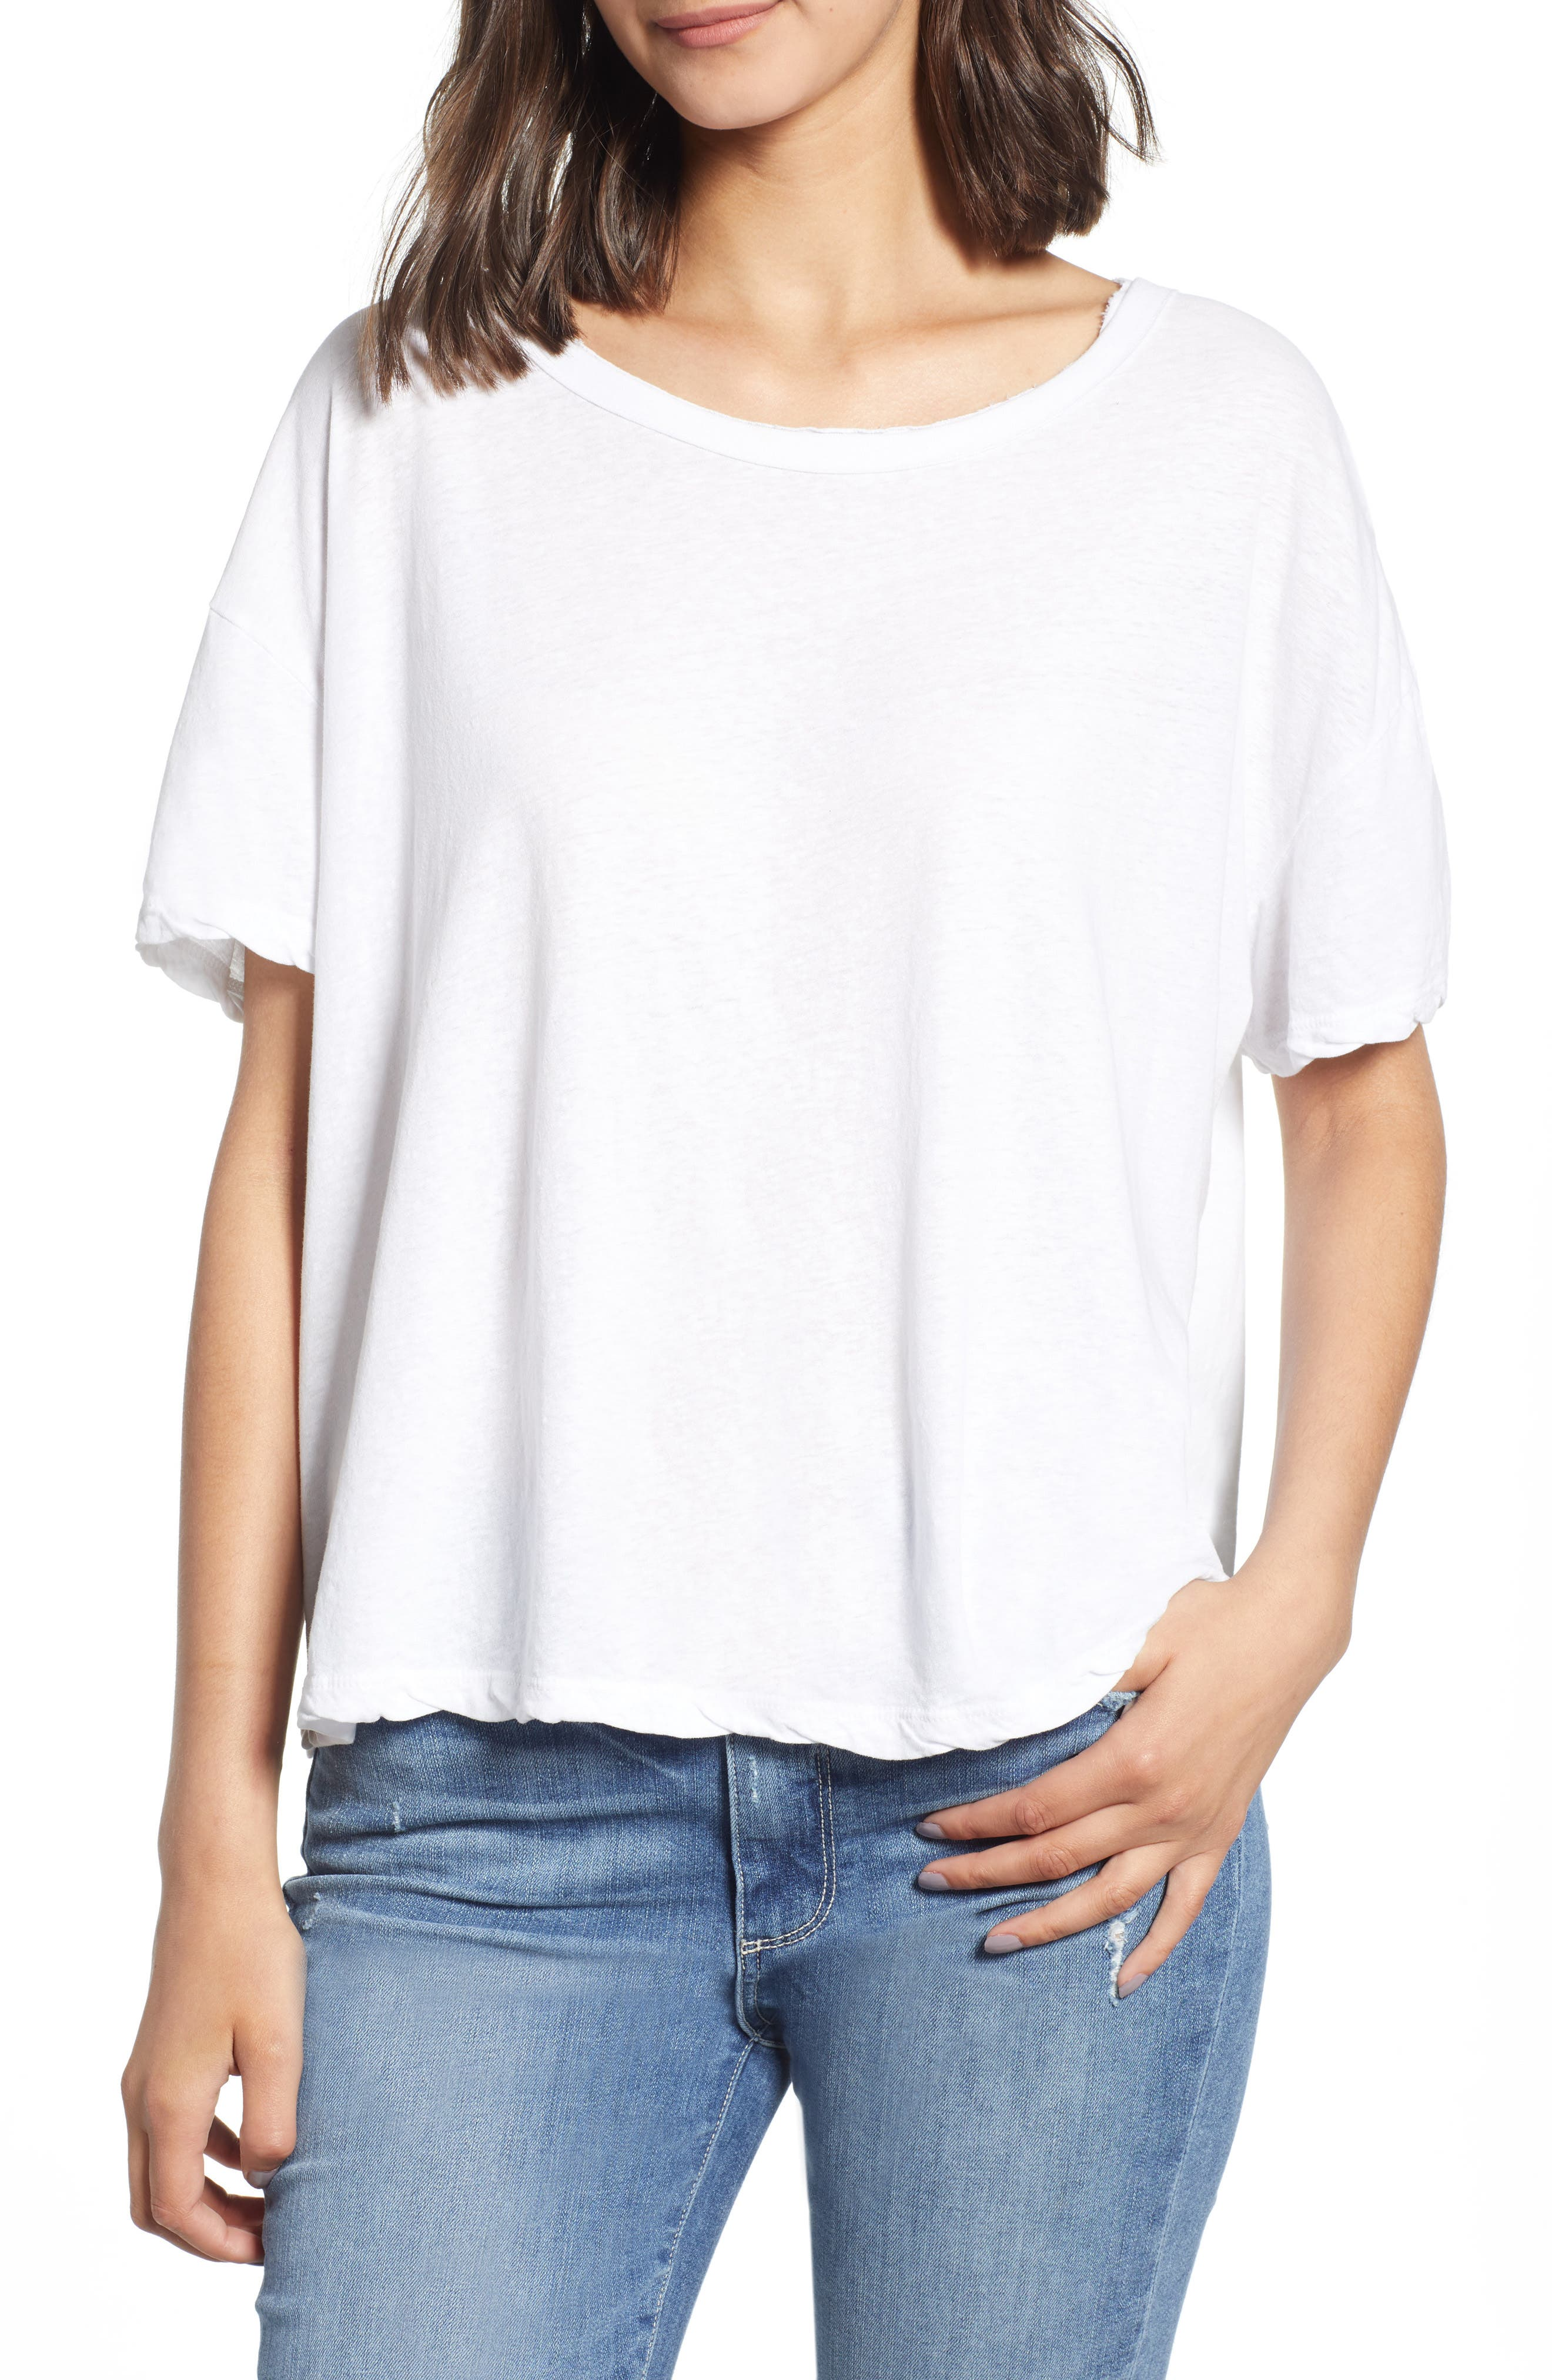 BOXY TEE from Nordstrom